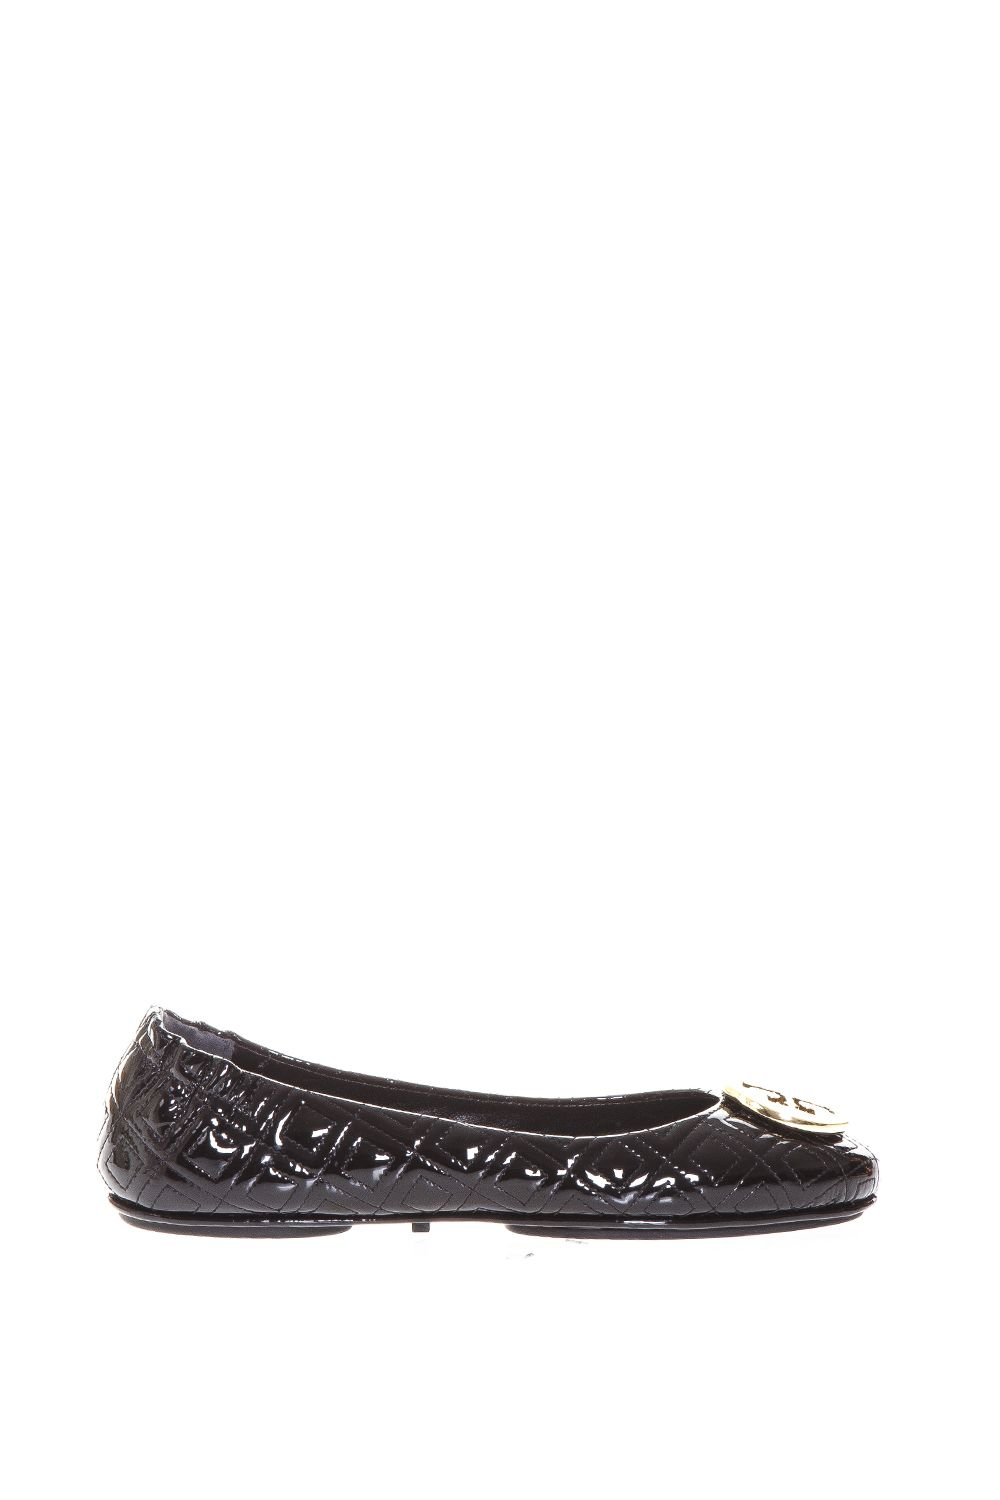 Tory Burch Minnie Travel Ballet Flat In Quilted Leather